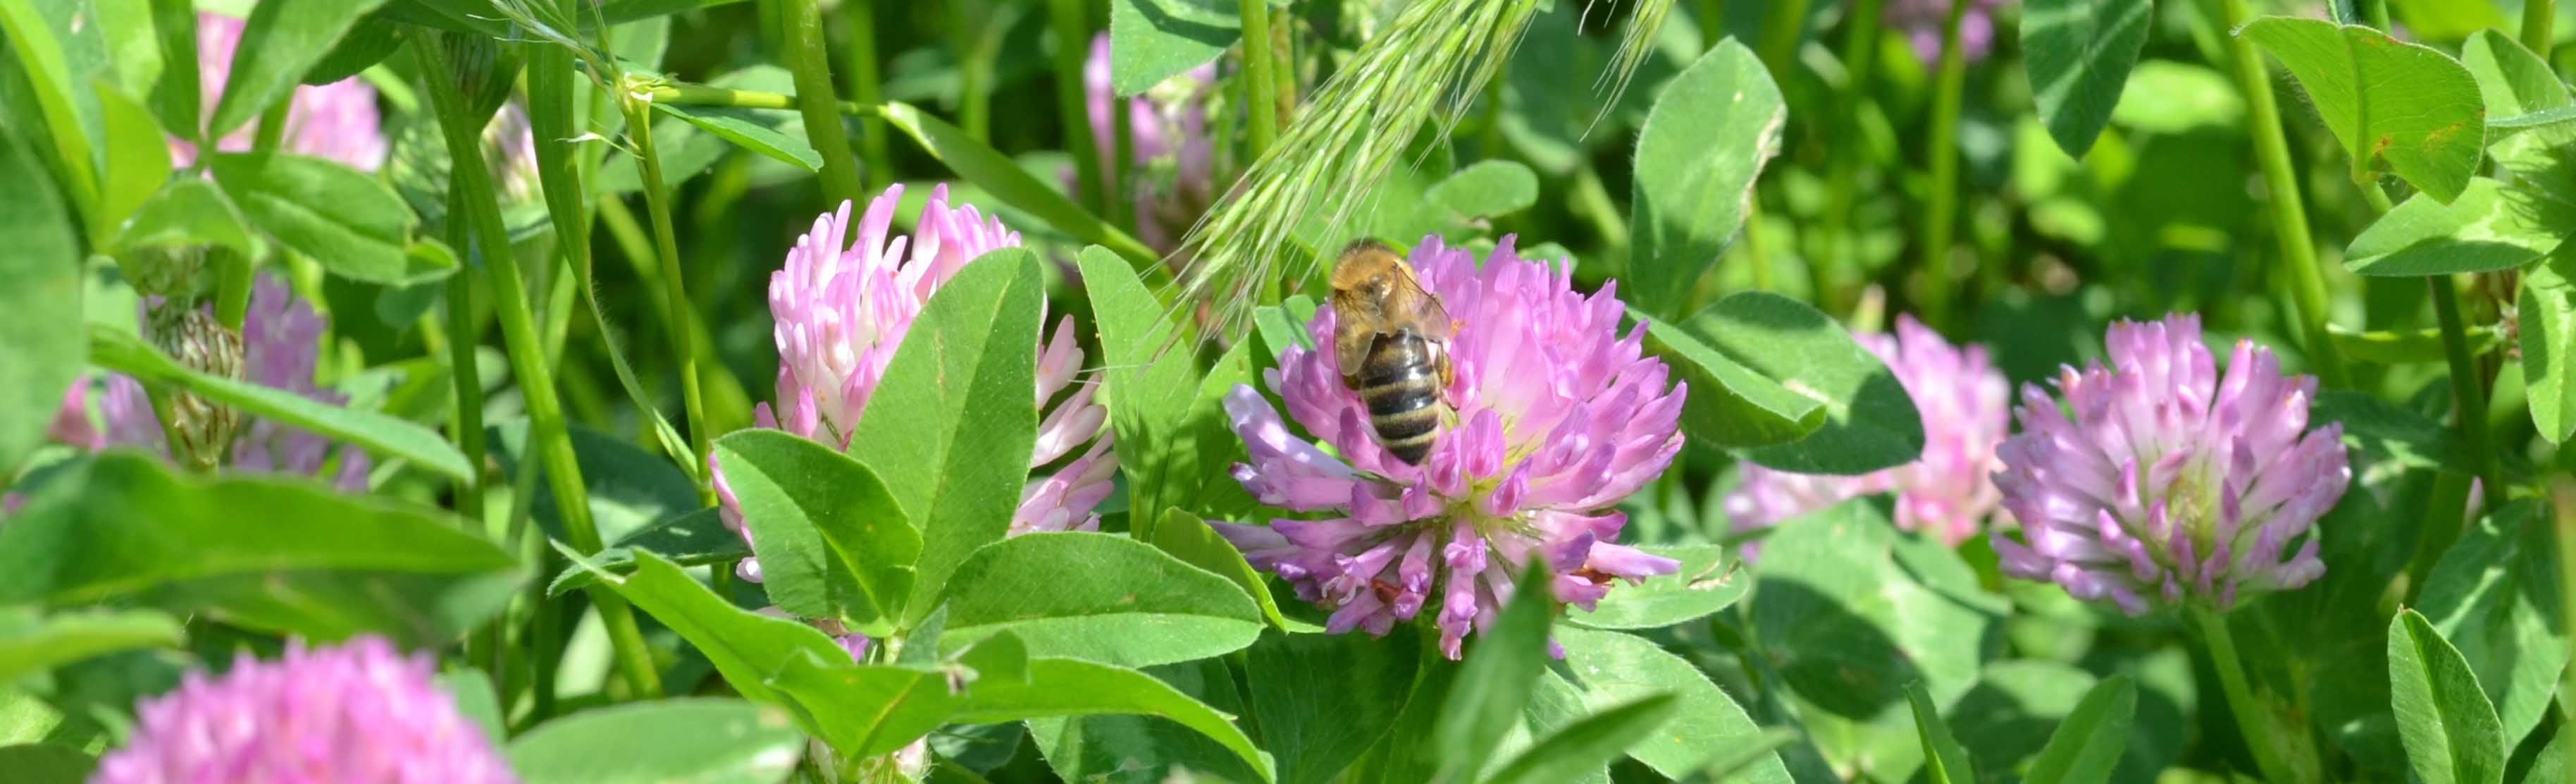 A honeybee visits a patch of red clover.